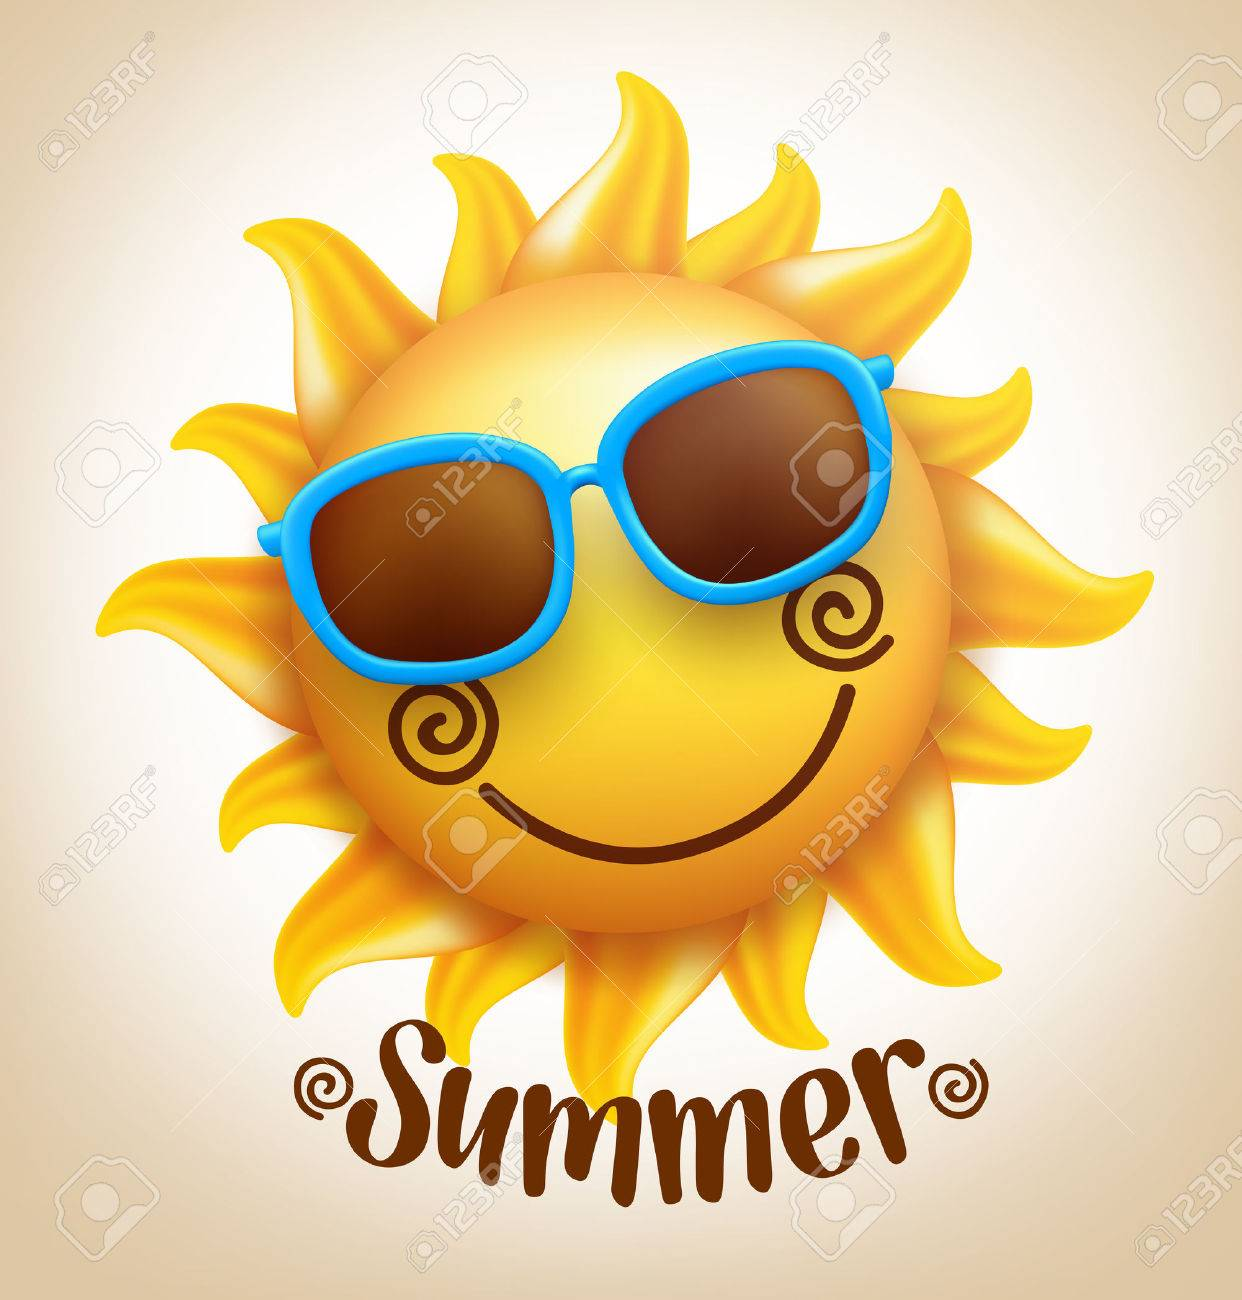 3D Realistic Happy Smiling Cute Sun Vector with Colorful Sunglasses with Summer Title. Vector Illustration - 52730544